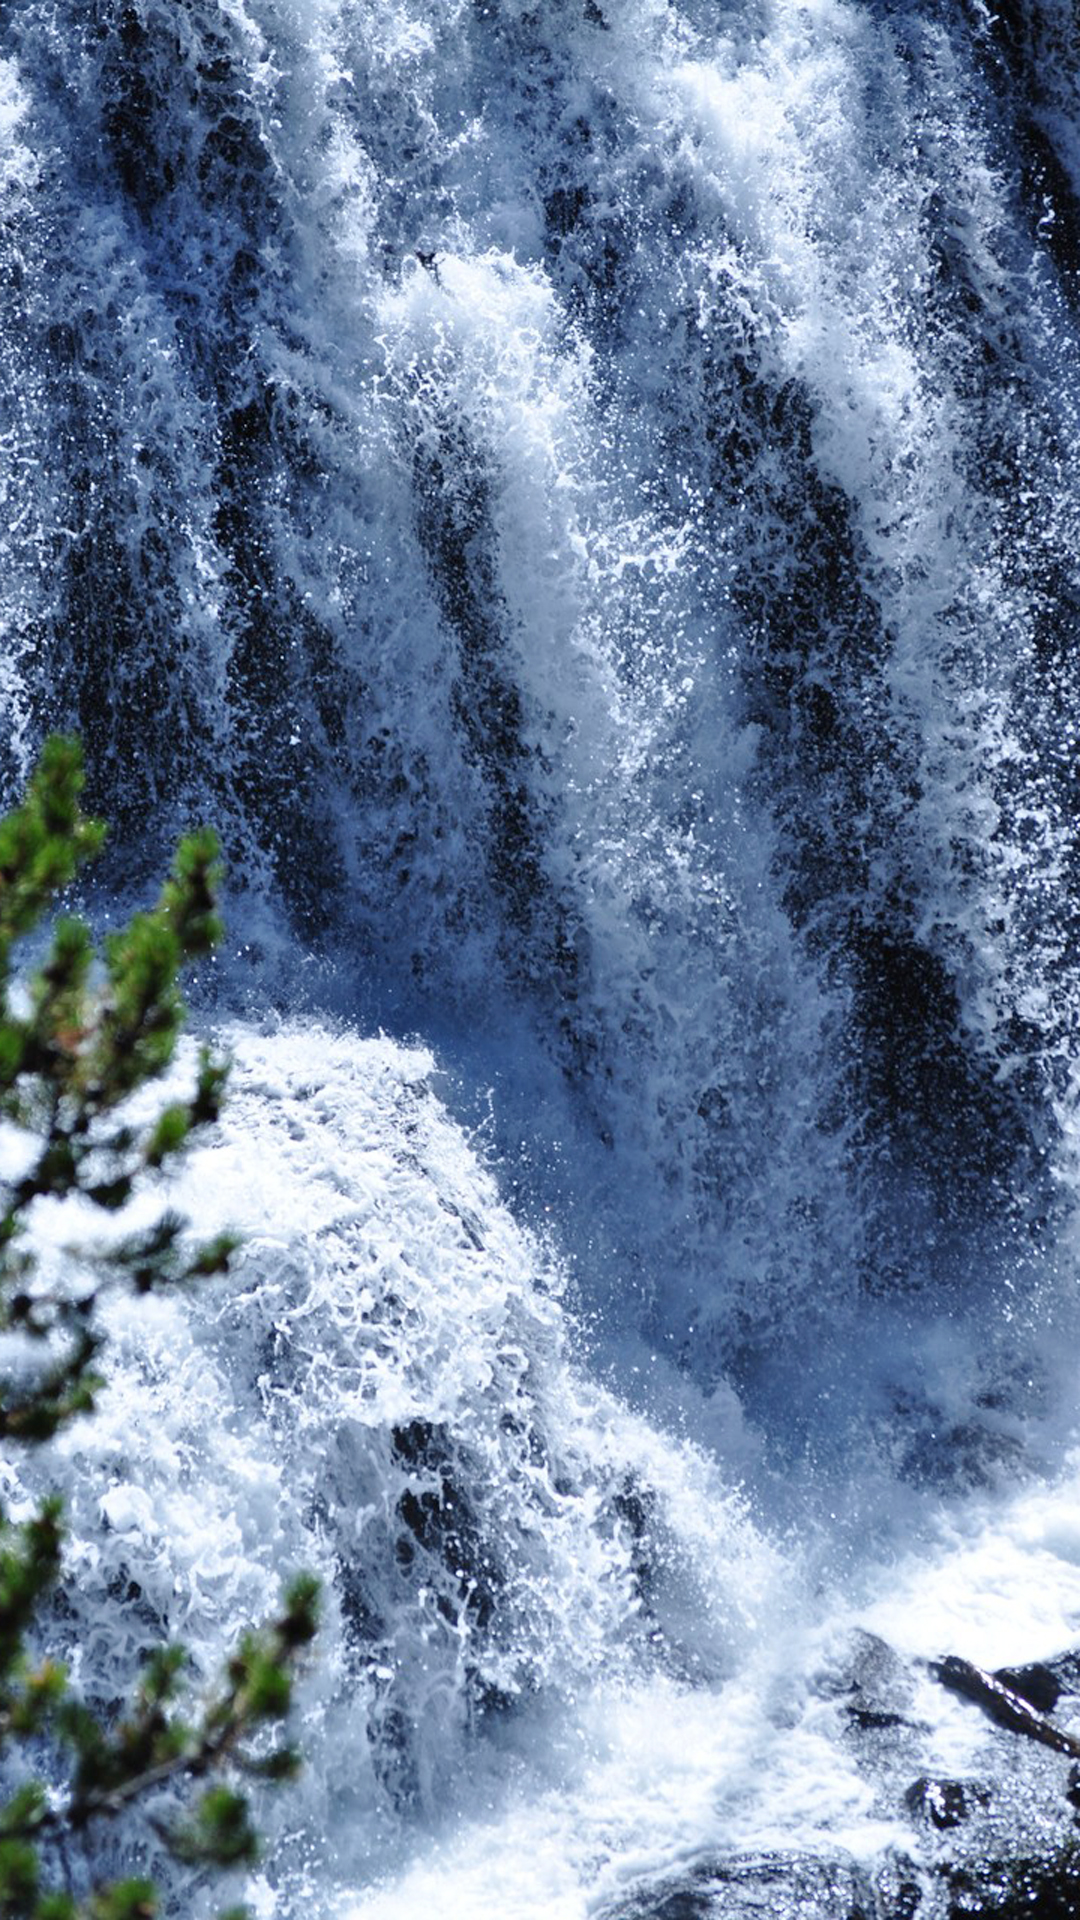 Waterfall From Hill